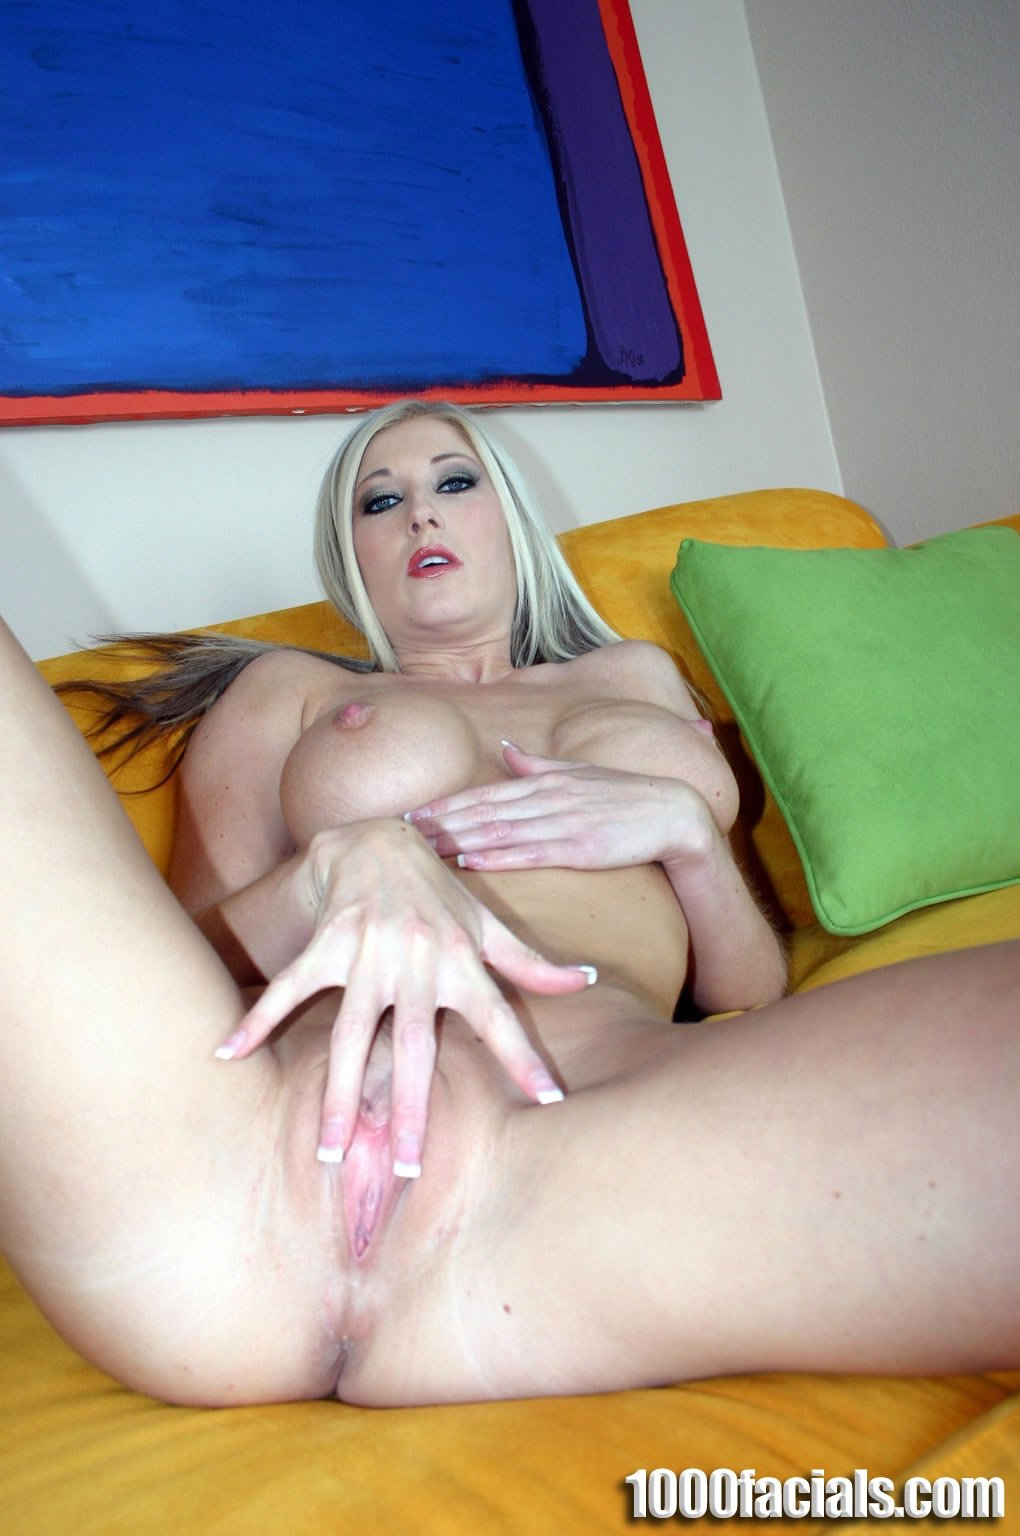 Hairy fat hd facesitting xxxplay Hirsute amature porn pics